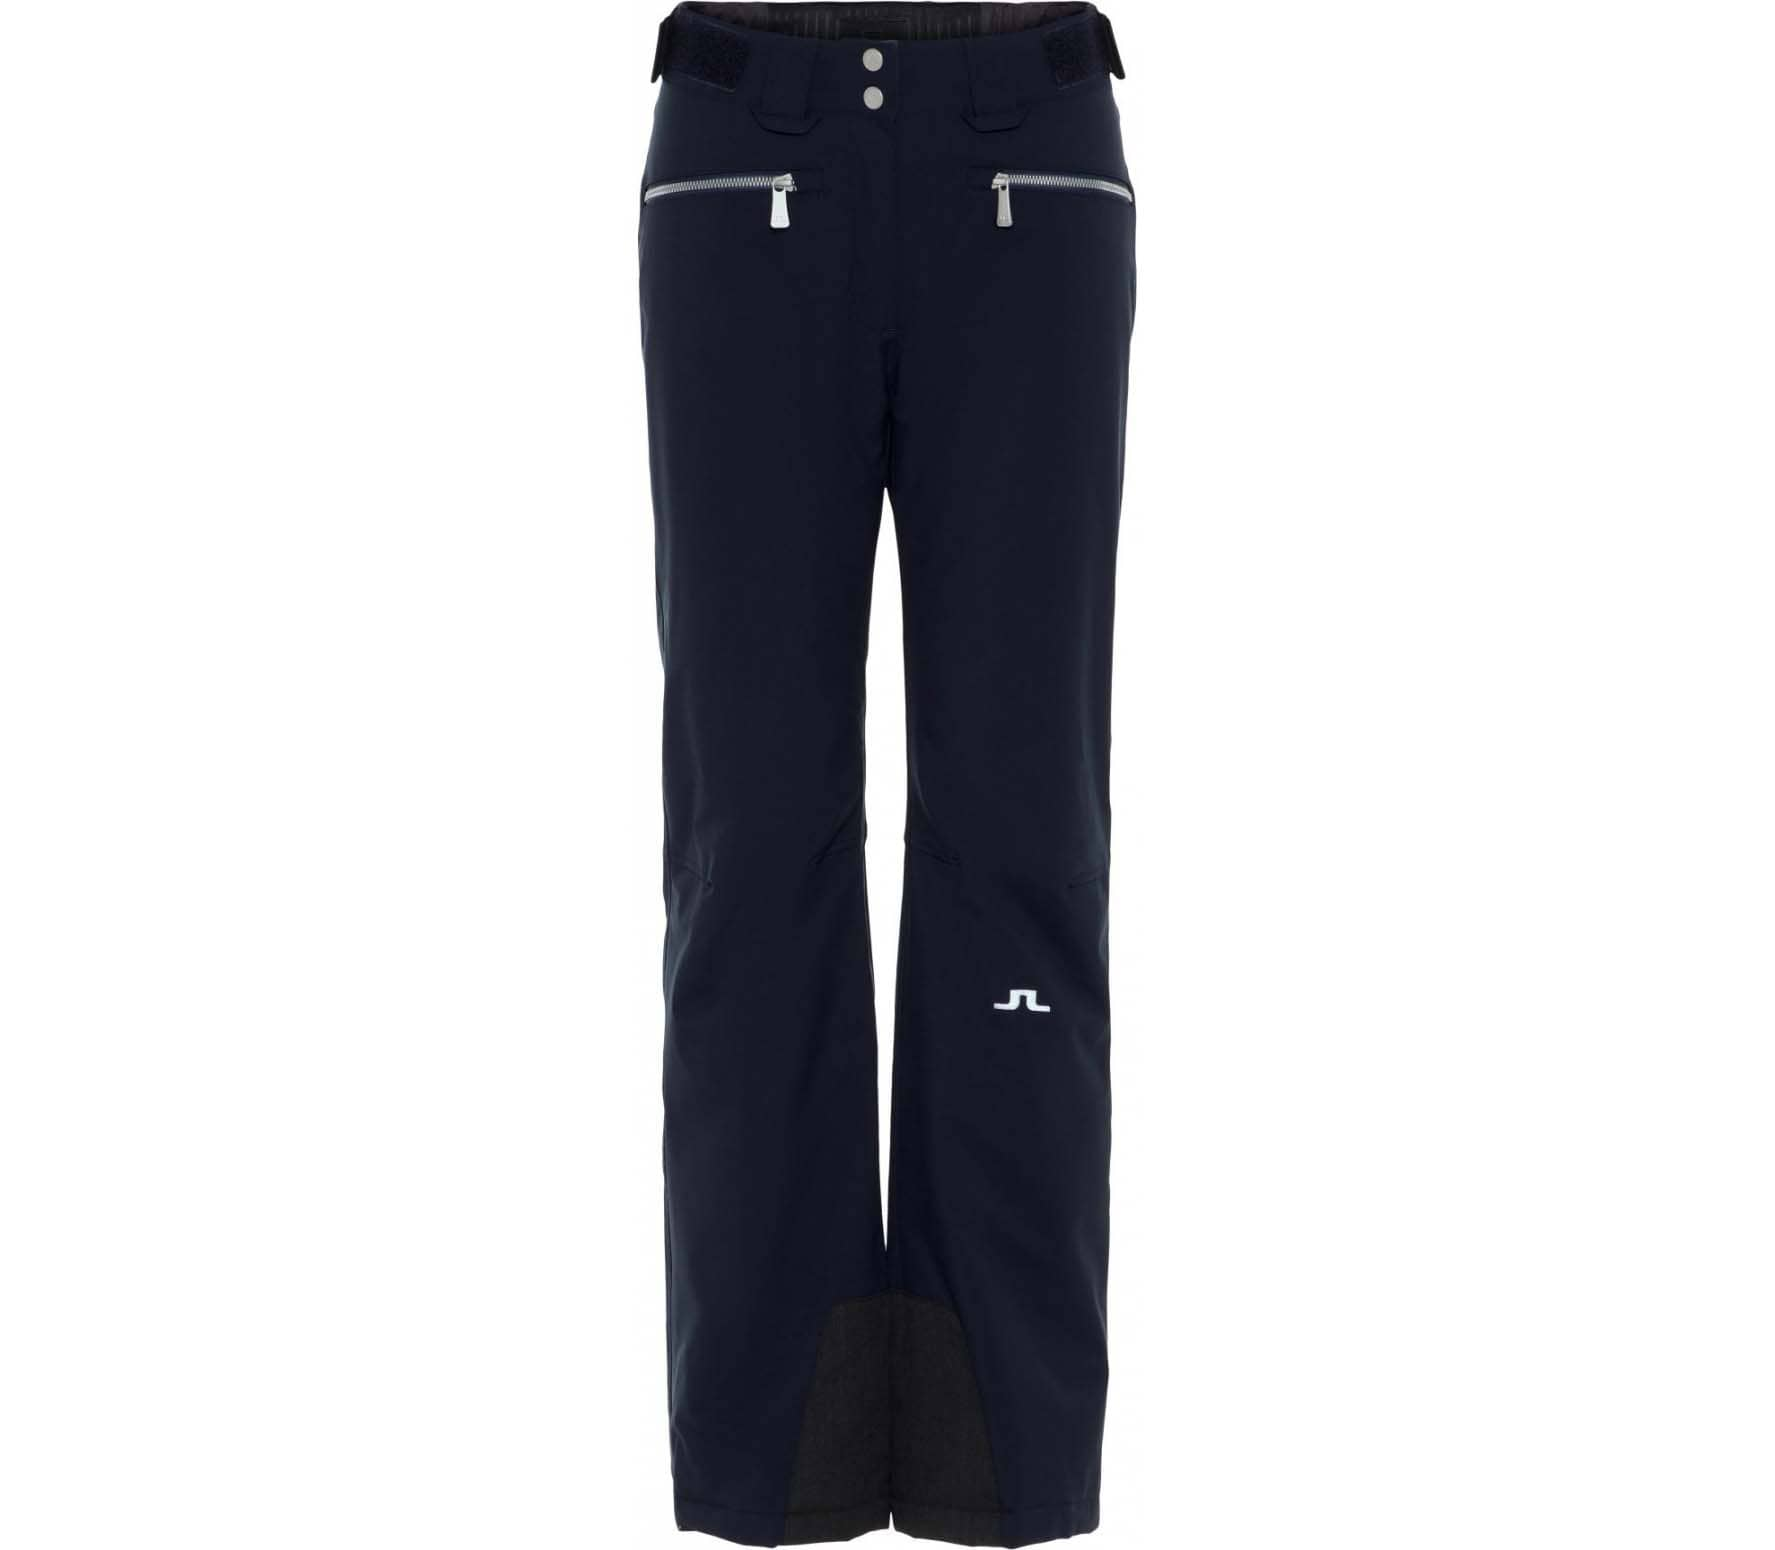 J.Lindeberg - Truuli P 2L women's skis pants (blue)